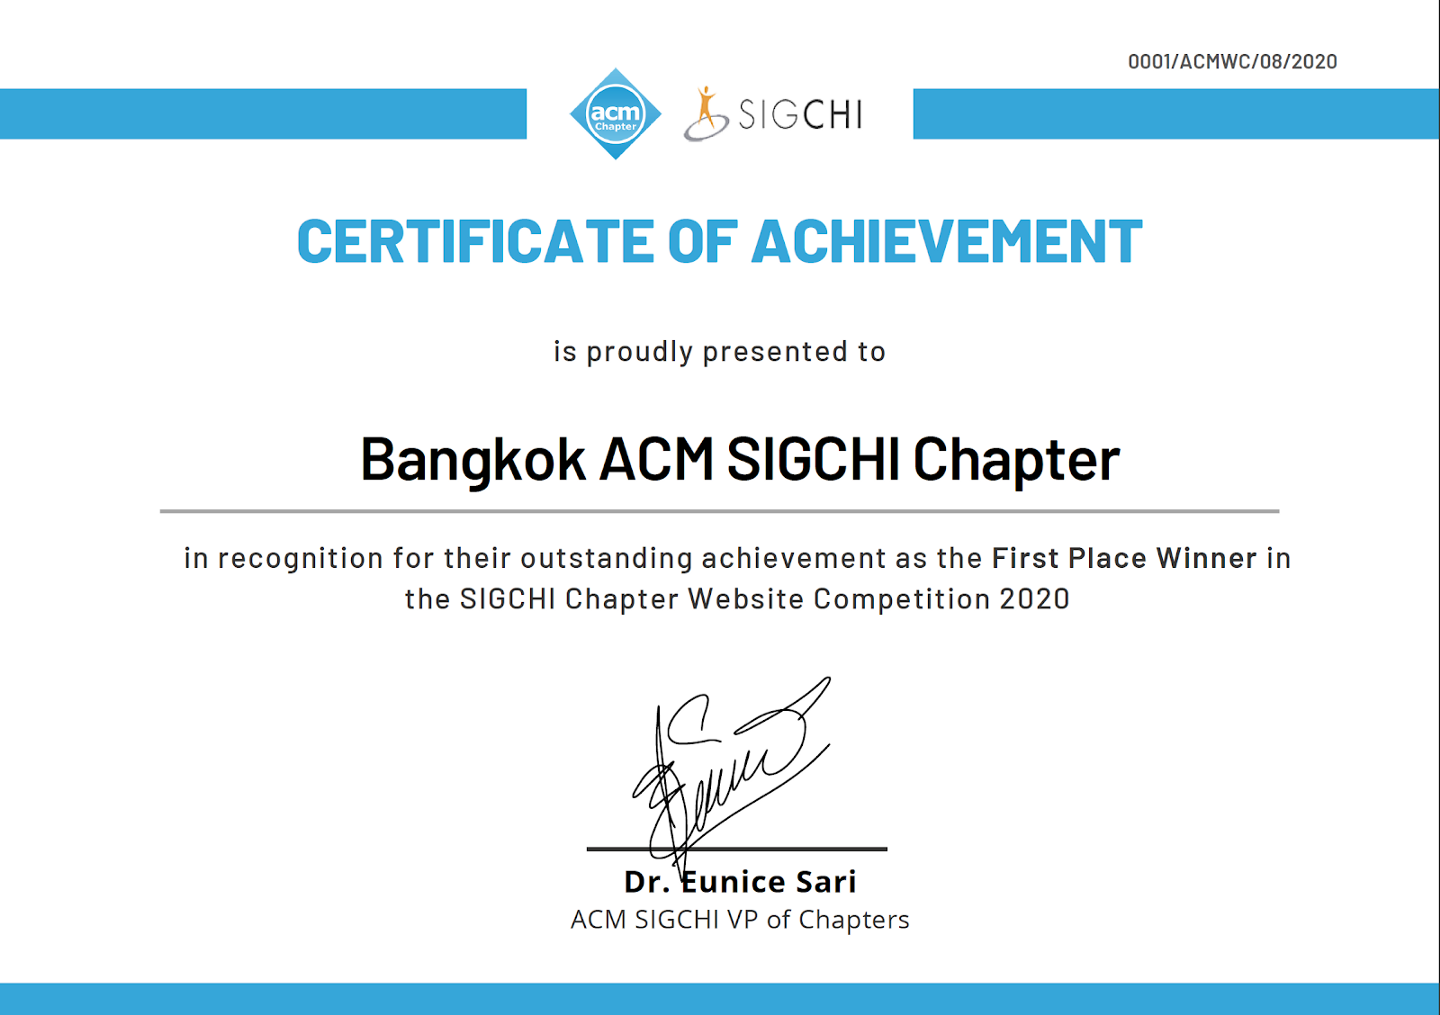 First Place Winner Certificate of Achievement for Bangkok ACM SIGCHI Chapter